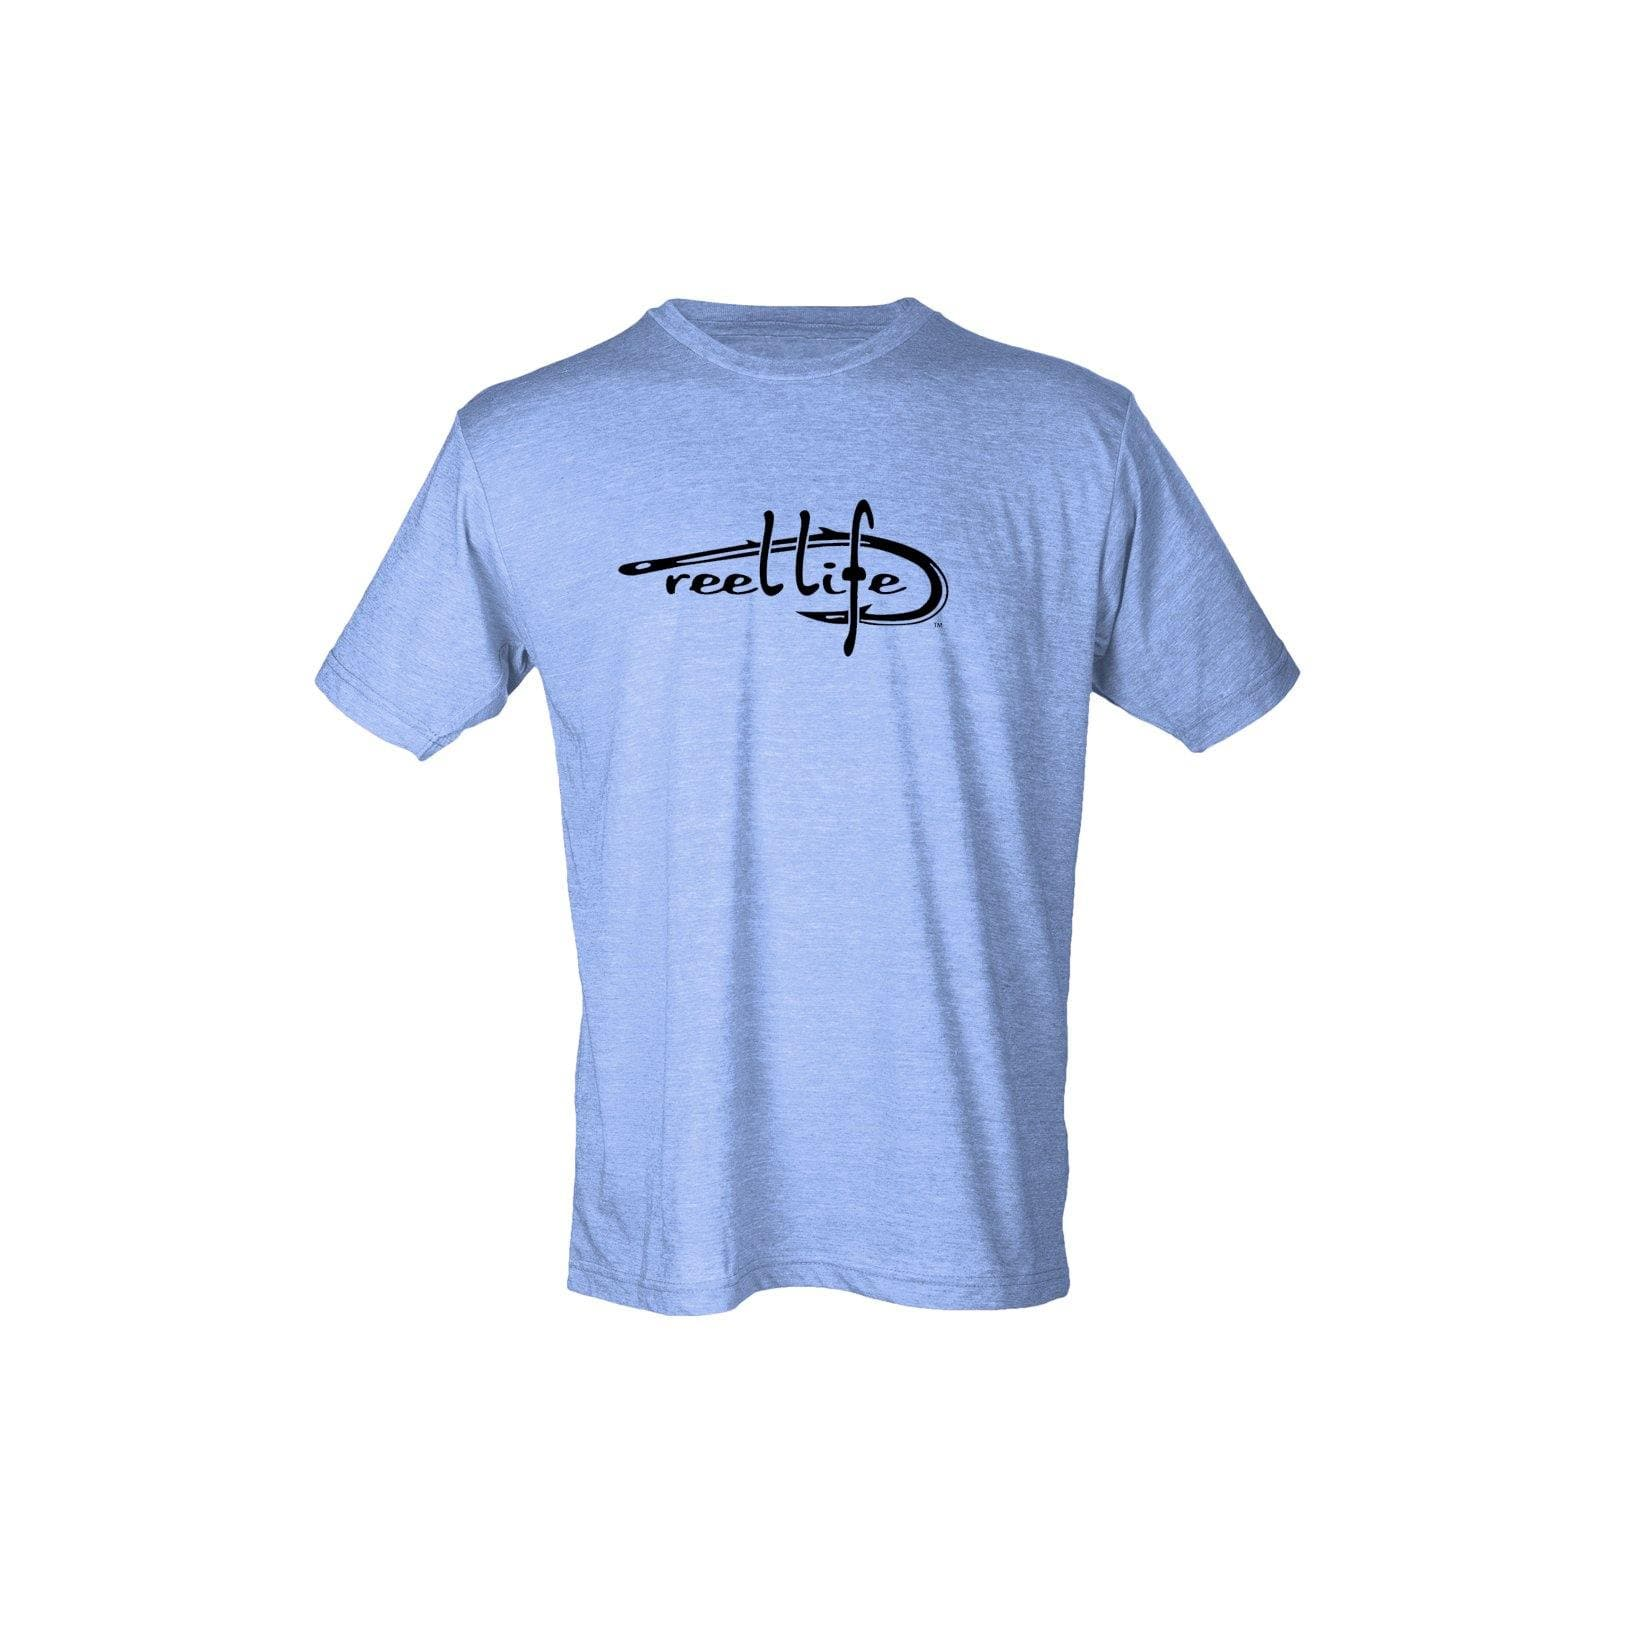 Reel Life Men's Short Sleeve Tee Classic Logo - Heather Blue